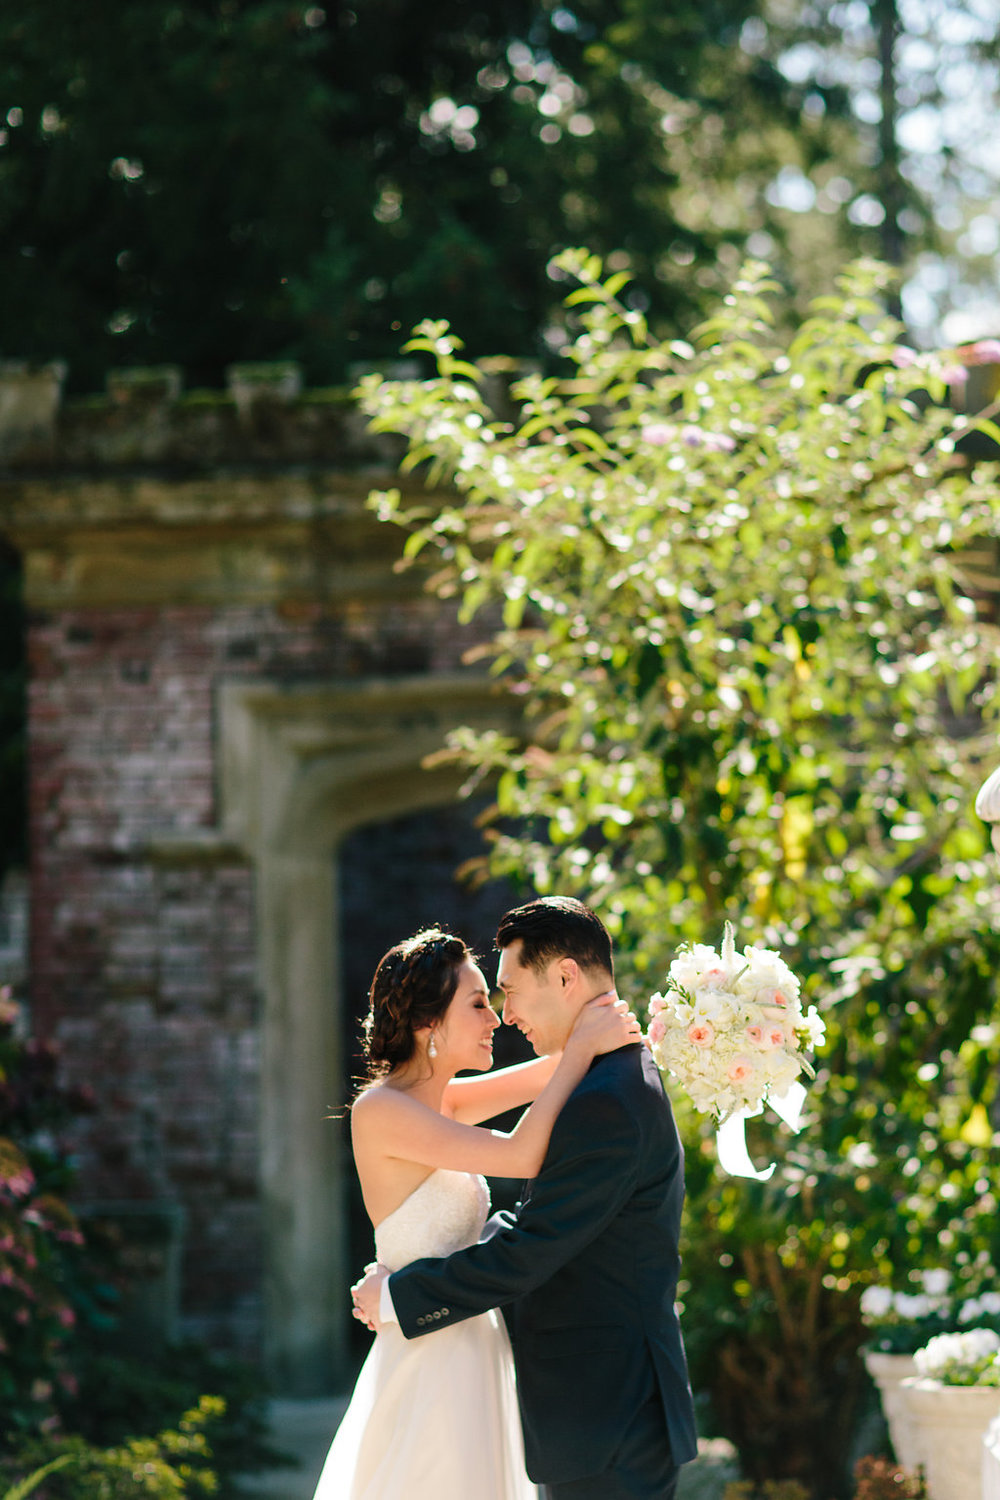 Kellylemonphotography_lucy+kento_weddingpreviews-16.jpg